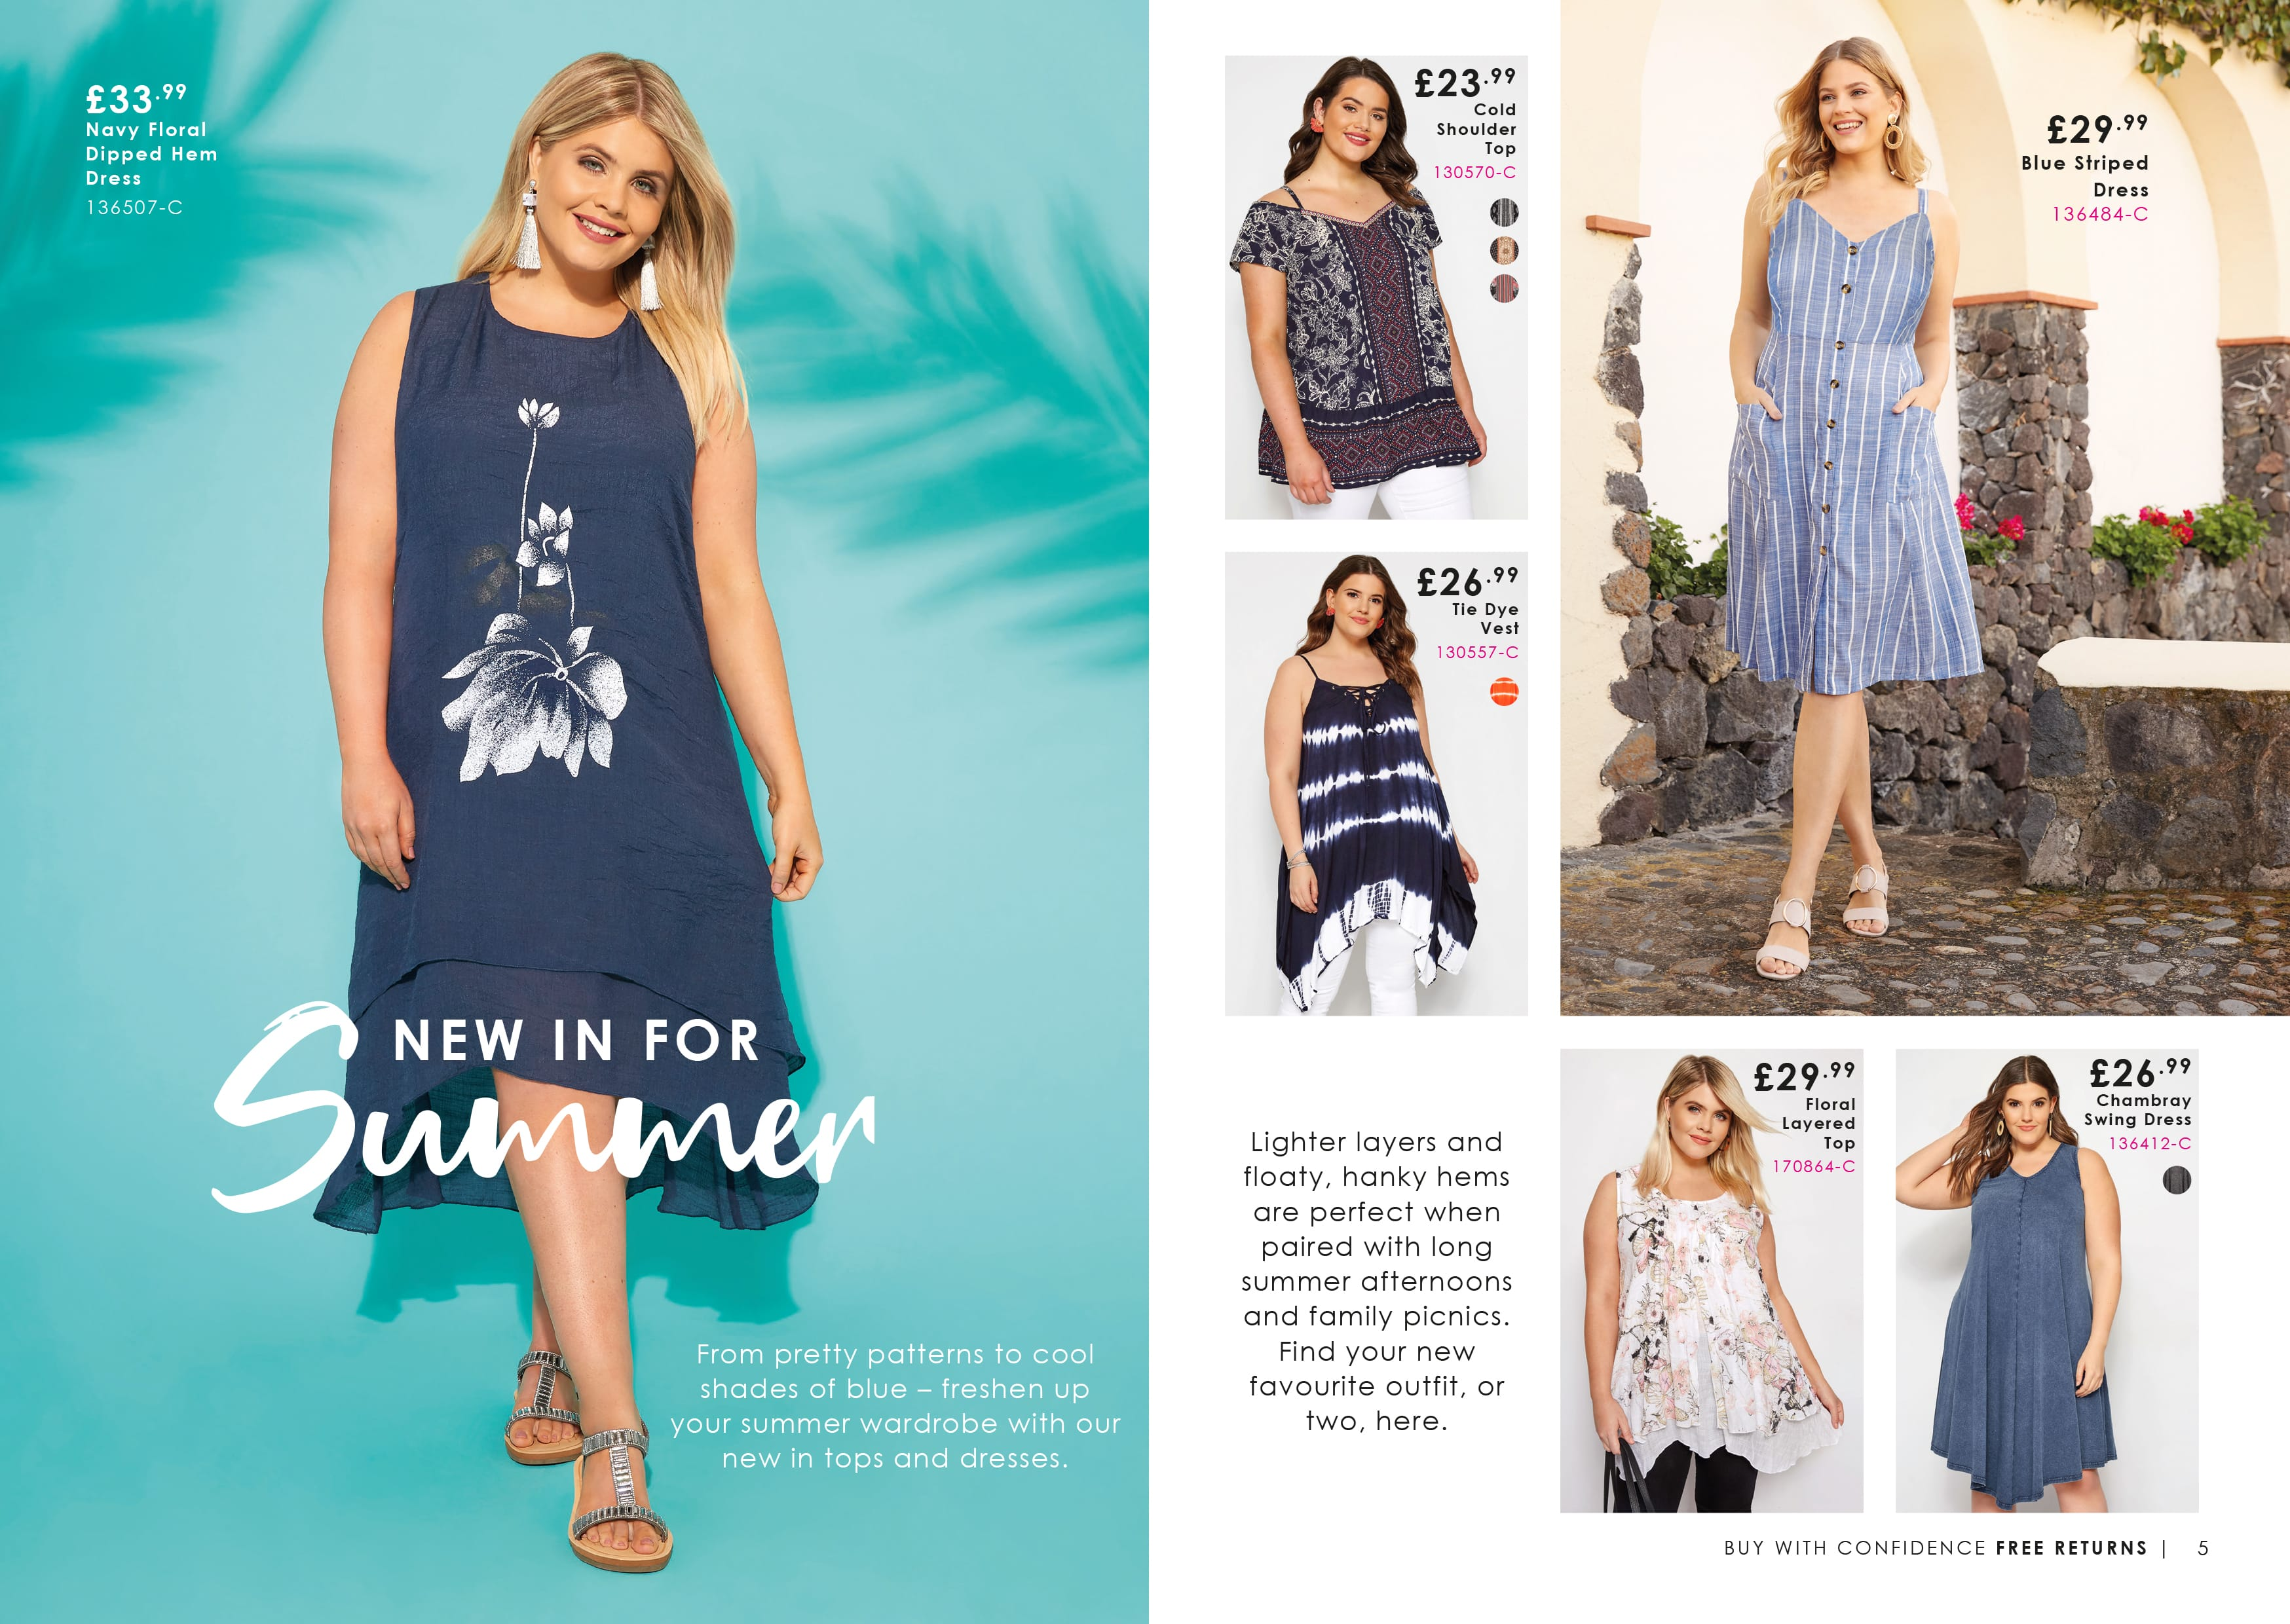 New In For Summer